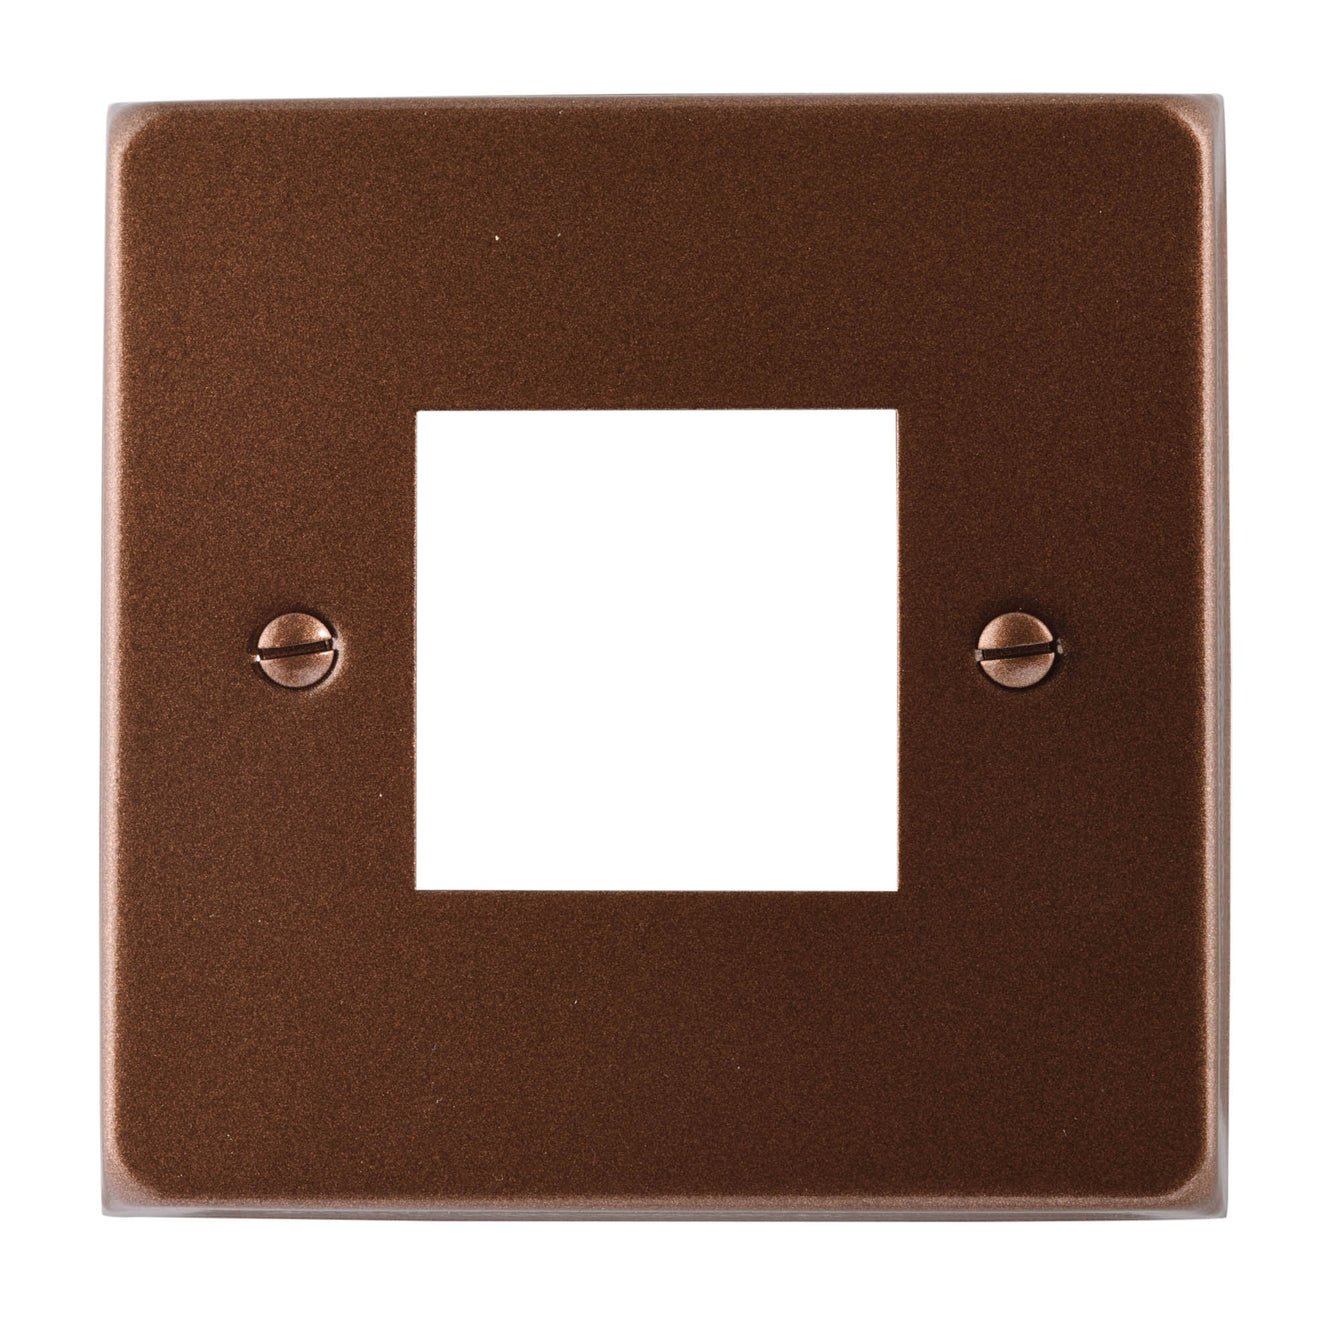 ElekTek Light Switch Cover Plate Double Conversion Victorian Colours - Buy It Better Jet Black